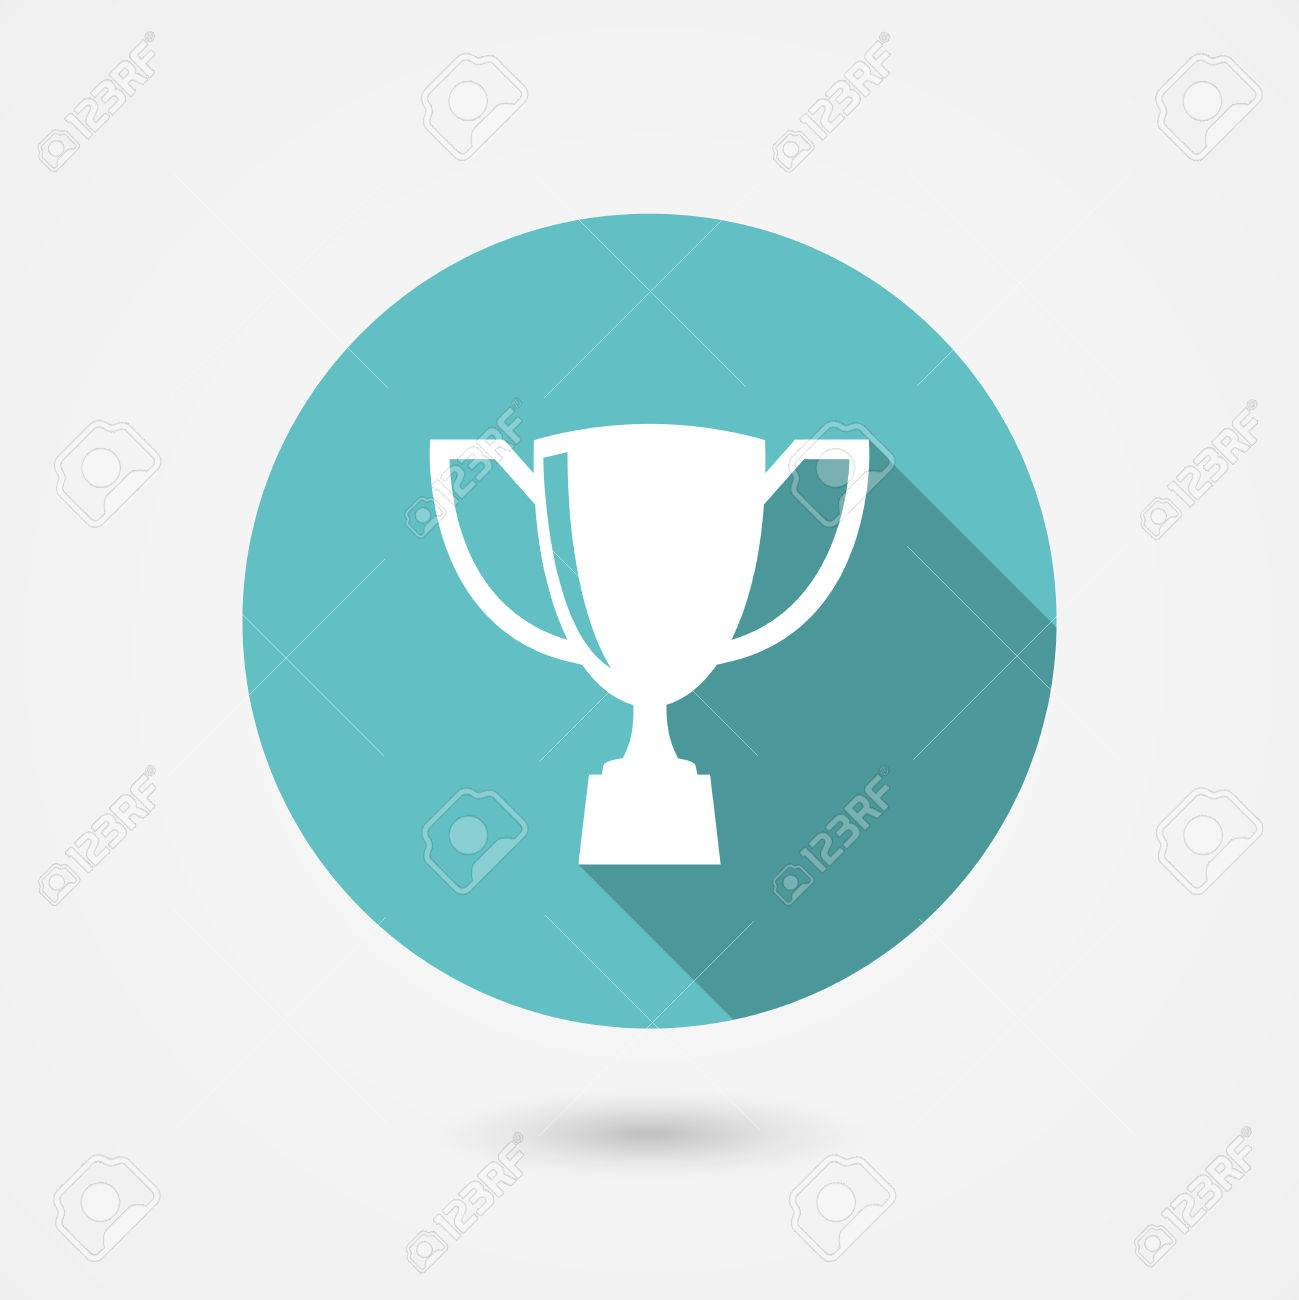 accomplishment stock photos images royalty accomplishment accomplishment trophy cup flat icon on a round blue frame